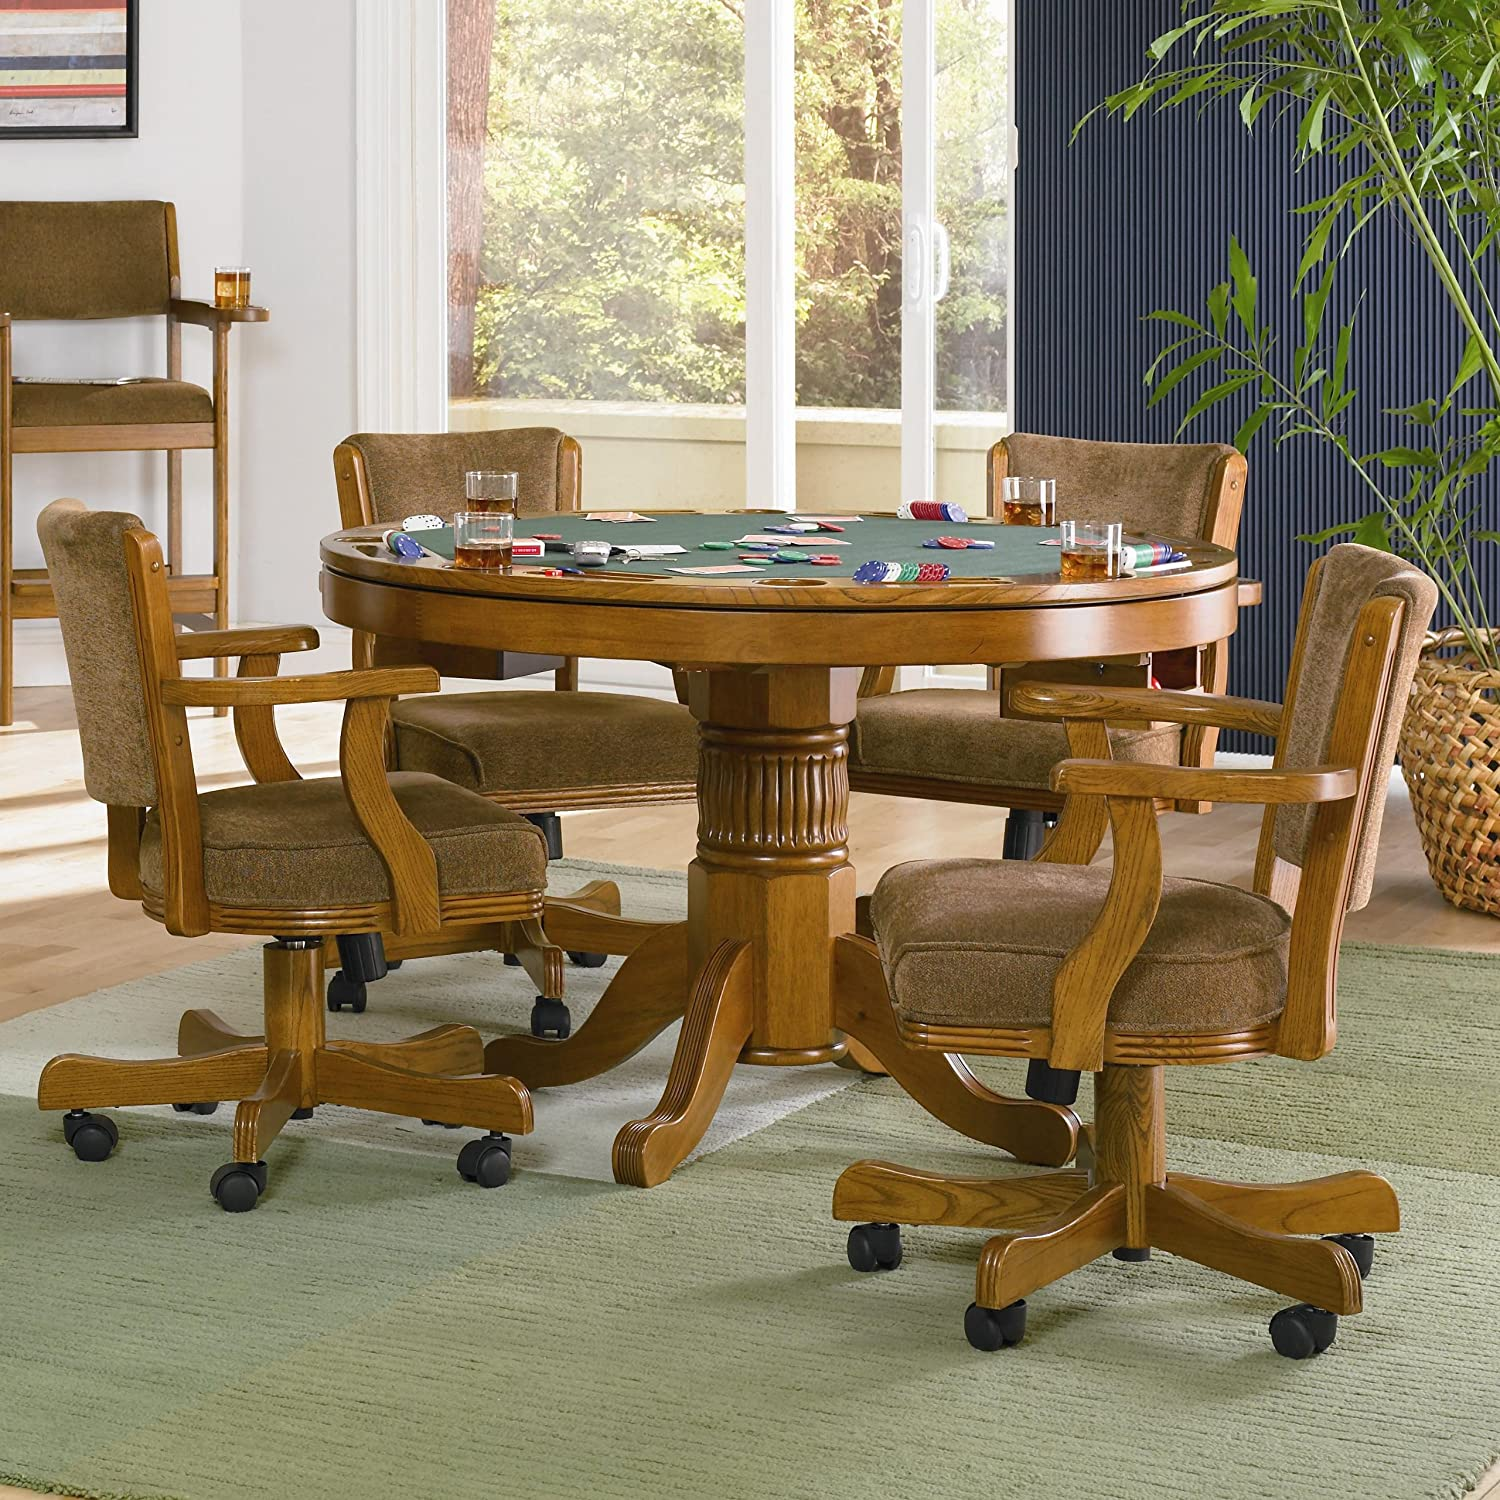 Coaster Home Furnishings Mitchell 5-Piece 3-in-1 Game Table Dining Set Amber and Olive-brown